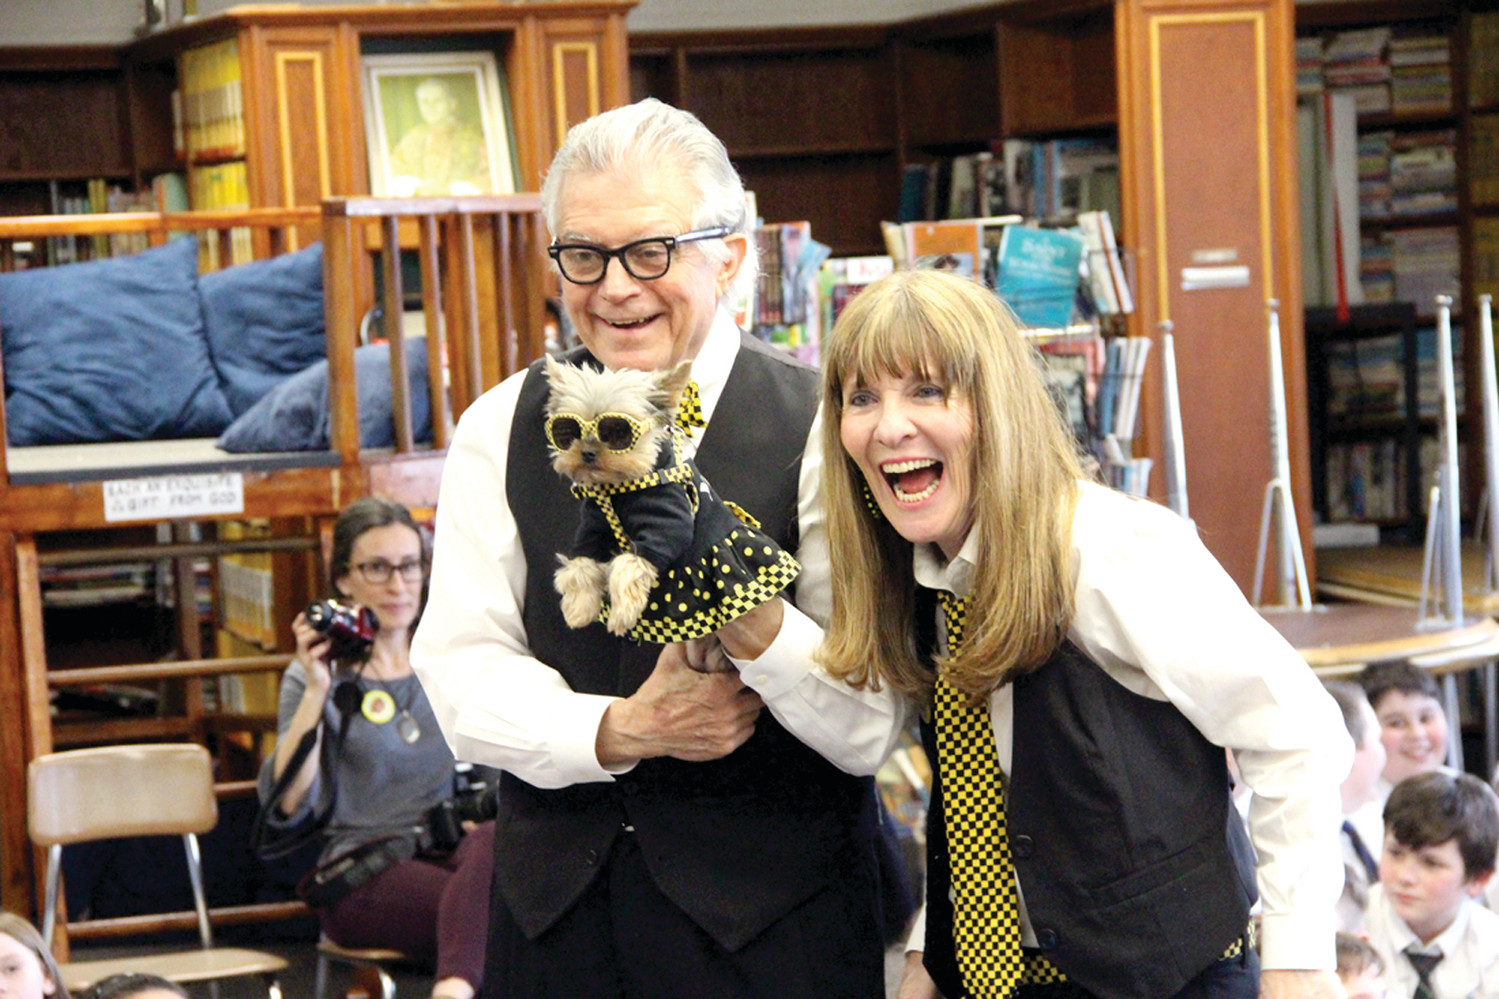 MAKING A HIT: NYC meteorologist Ron Trotta, Elly McGuire and furry celebrity pup Schmitty put on a show for St. Kevin students.